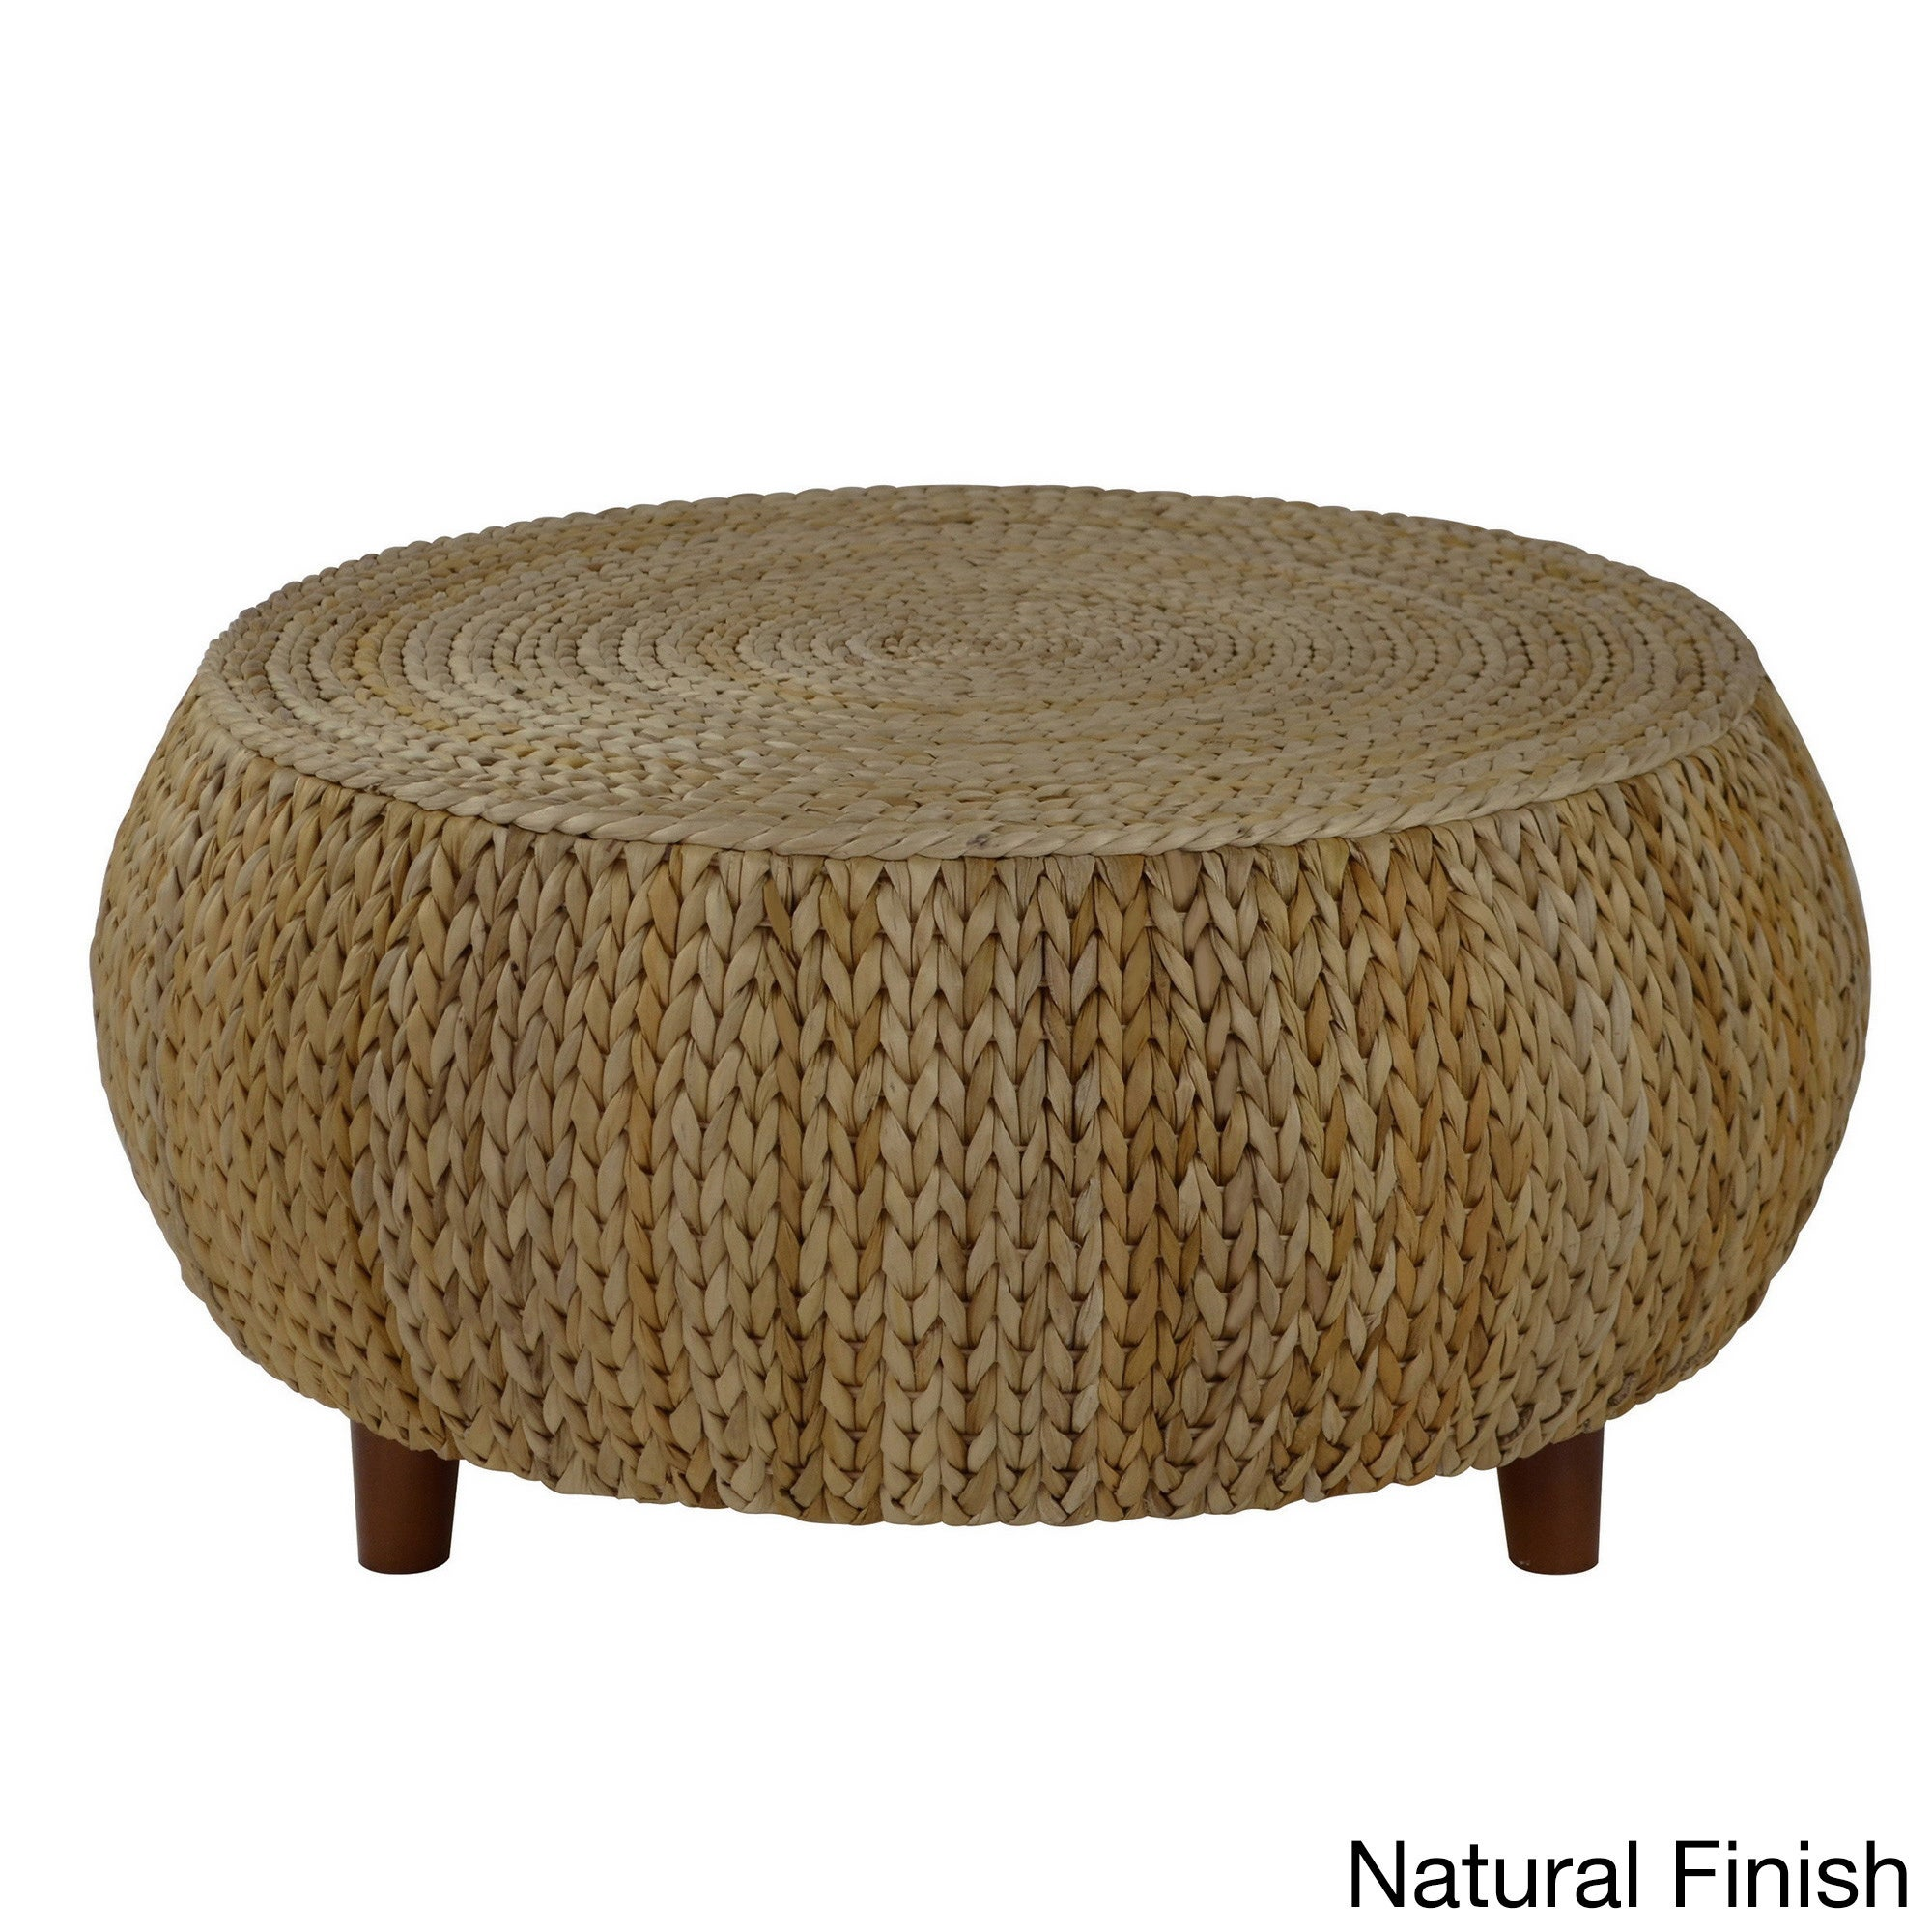 Gallerie decor bali breeze low round coffee table free shipping advertisement geotapseo Image collections